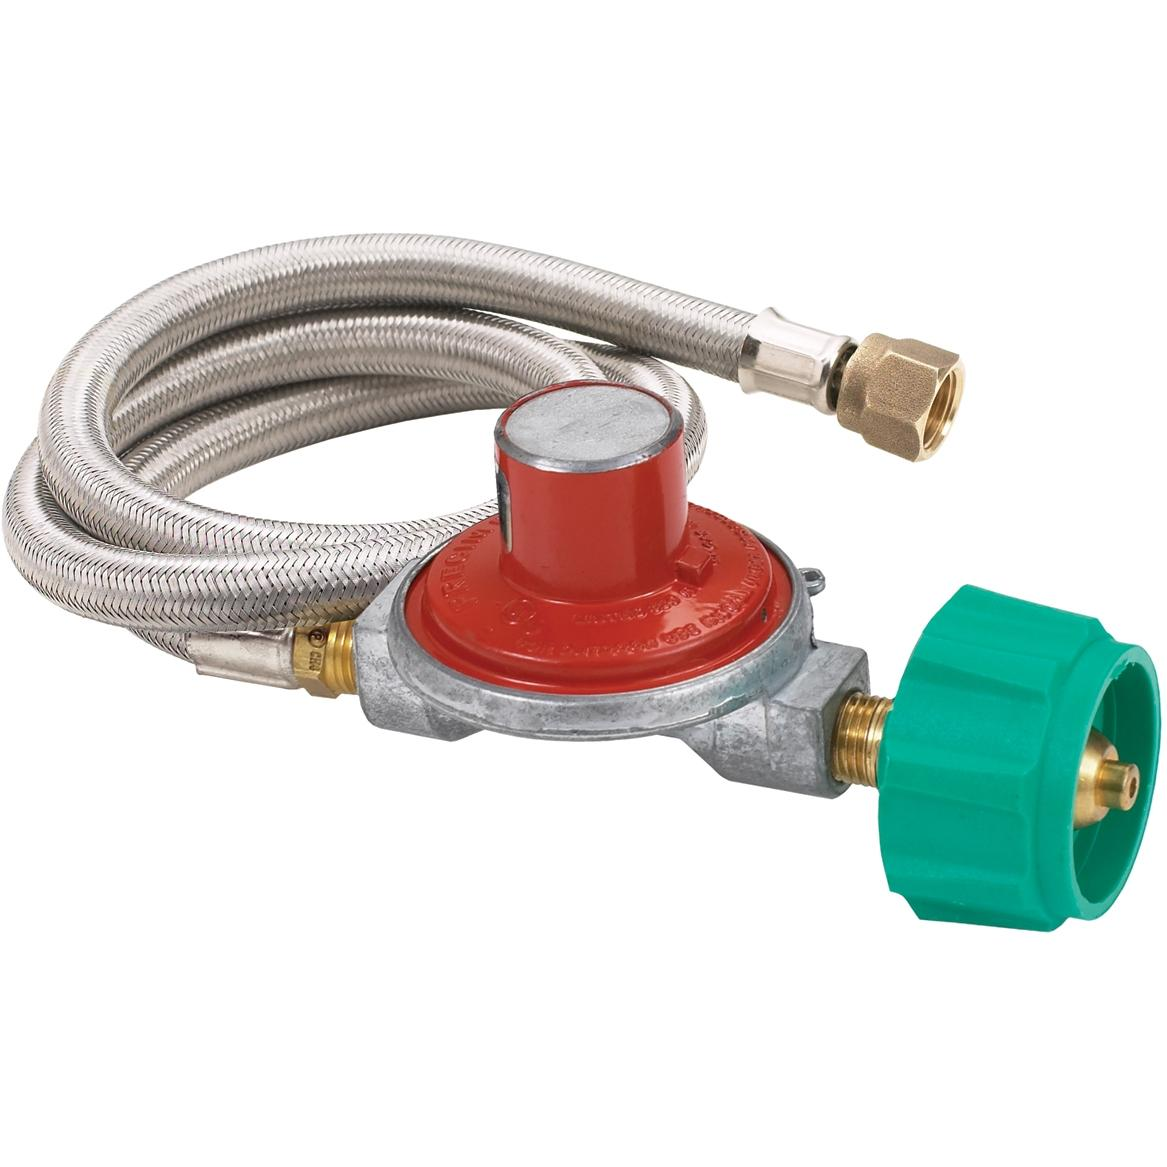 Bayou Classic 36 Inch High Pressure Stainless Braided Propane Hose And 15 PSI Preset Regulator